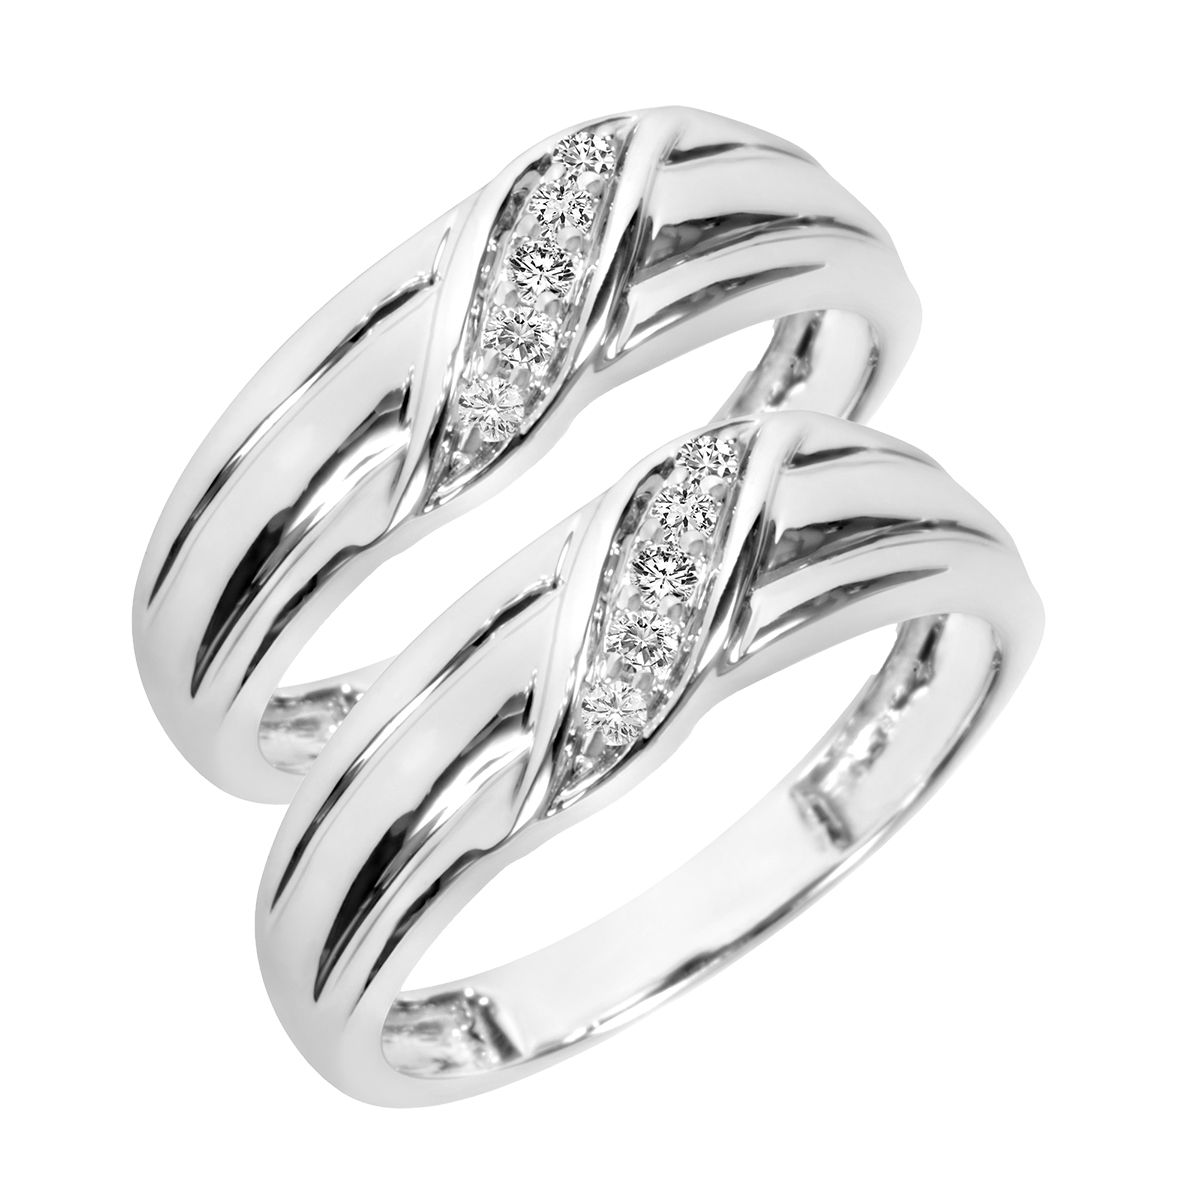 1/4 Carat T.W. Round Cut Mens  Same Sex Wedding Band Set 14K White Gold- Size 8